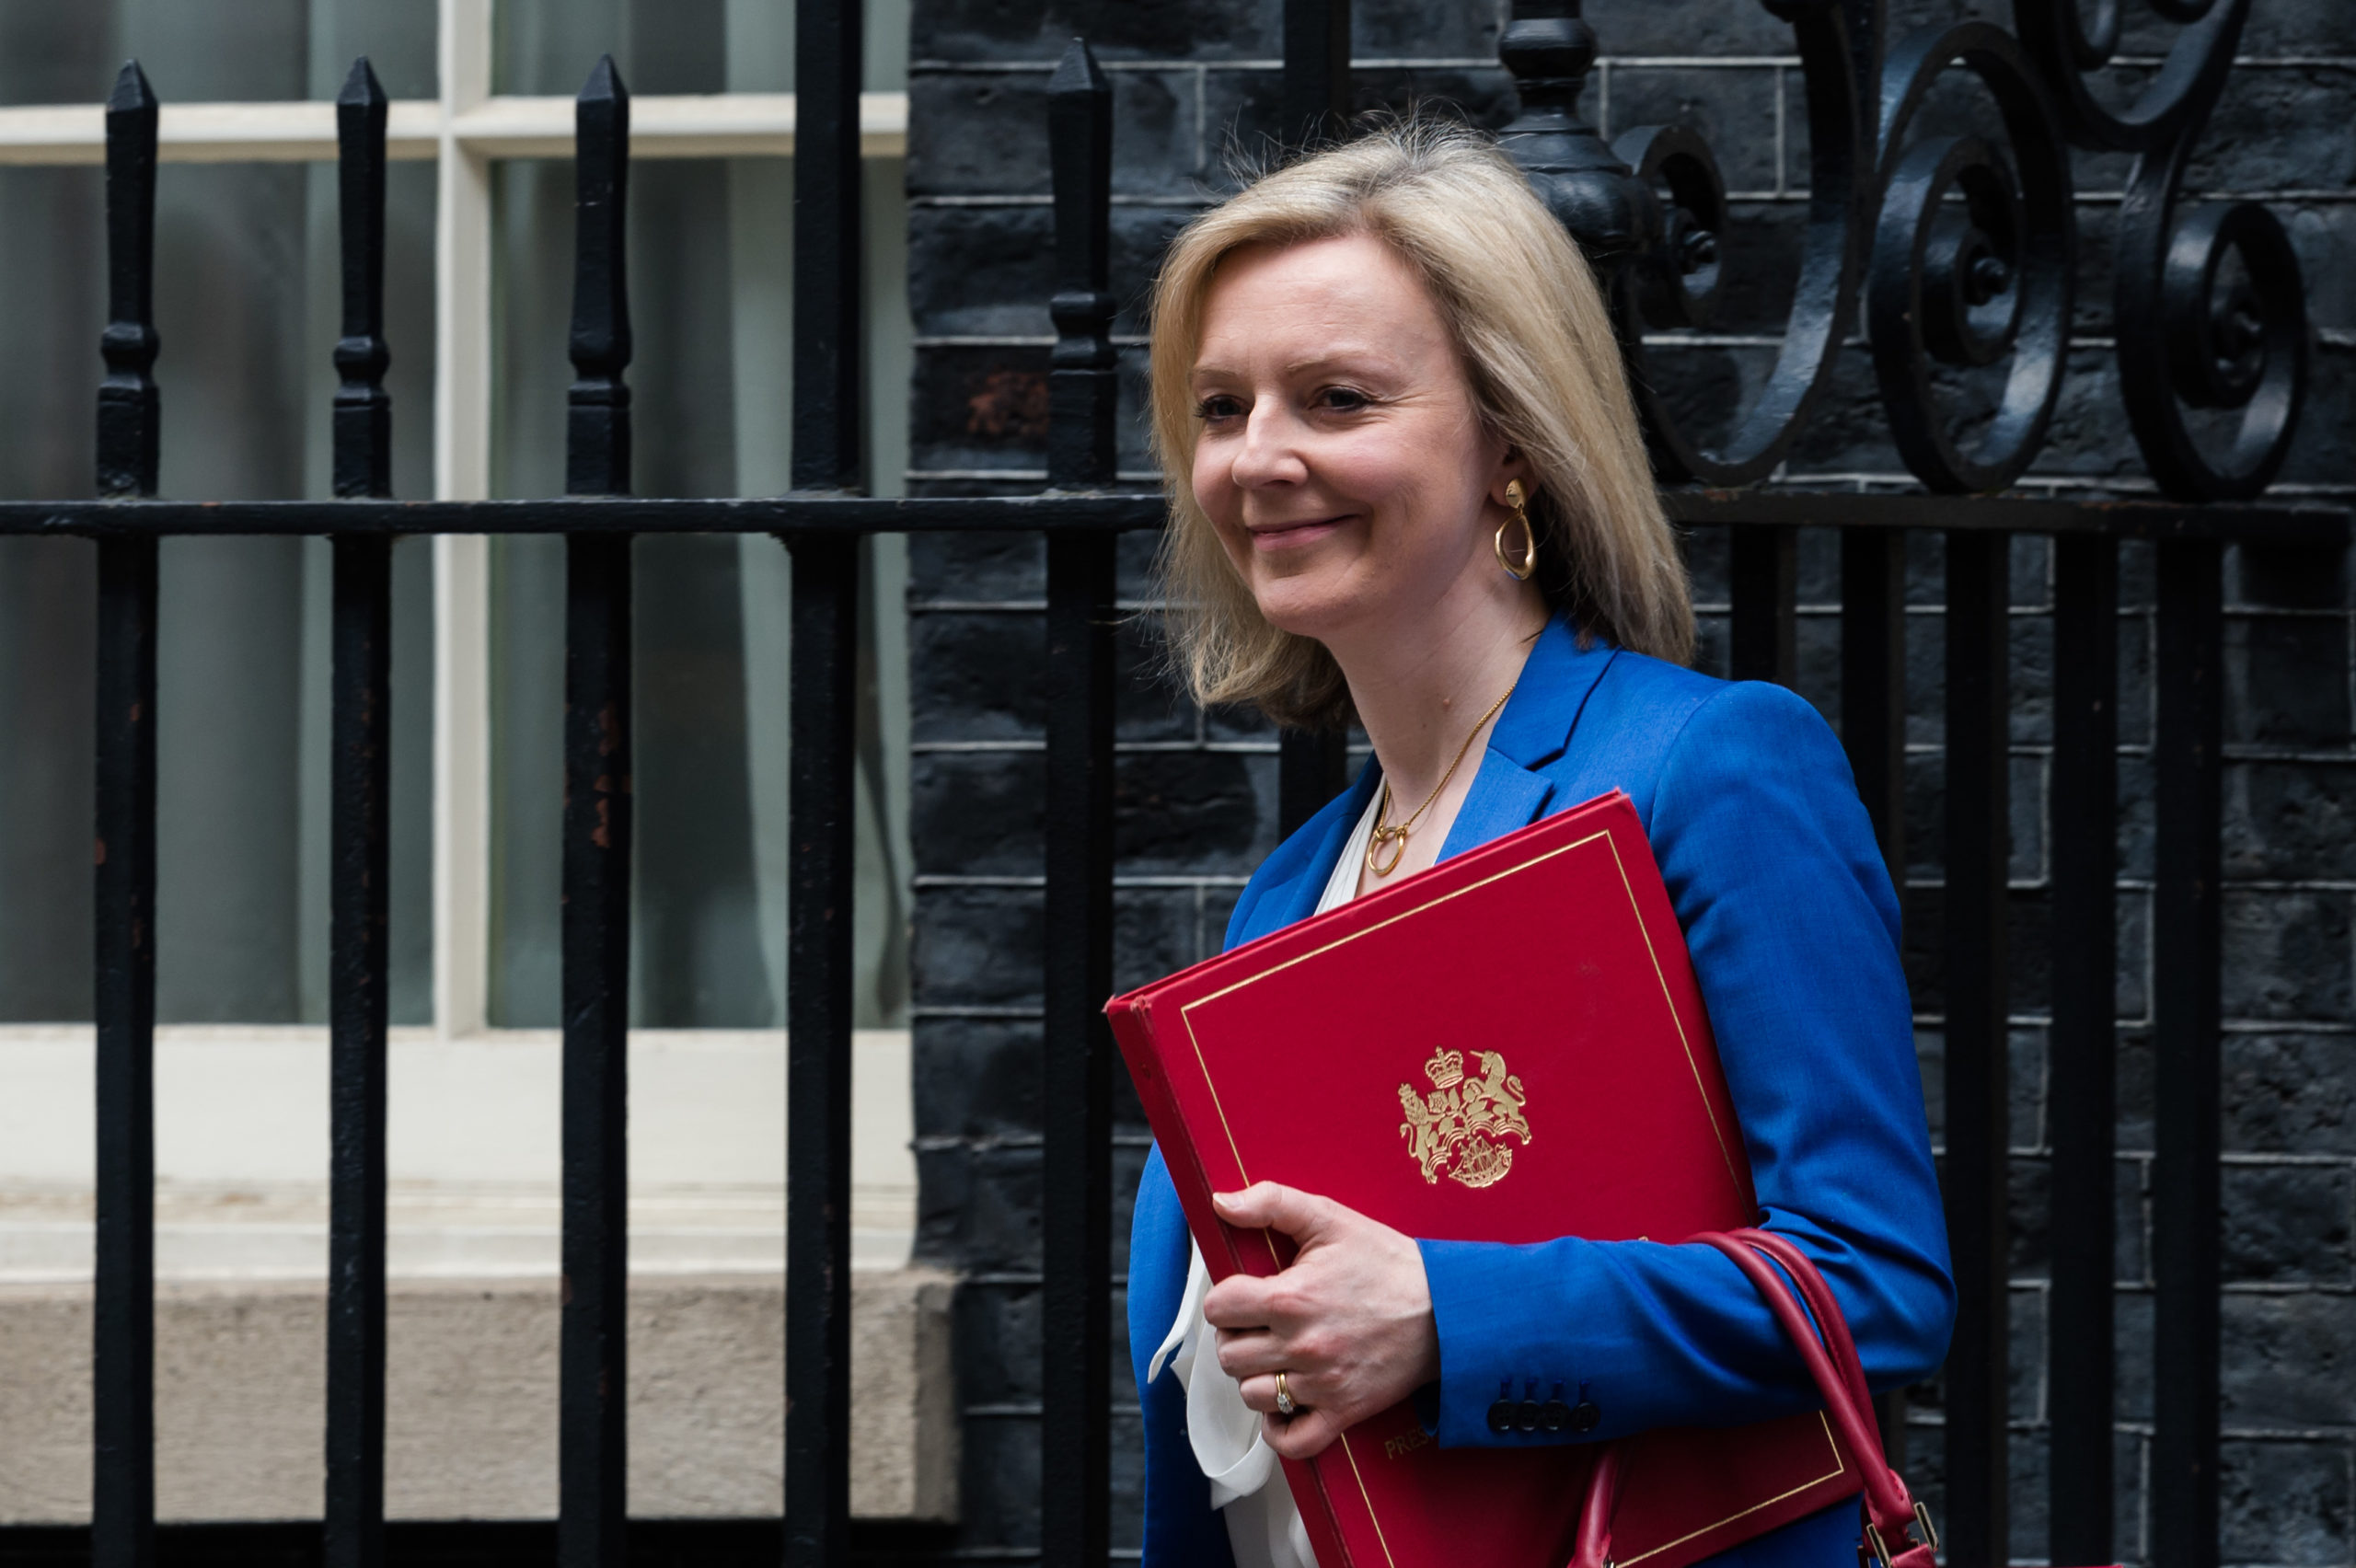 The petition calls on Minister for Women and Equalities Liz Truss to continue with GRA reform